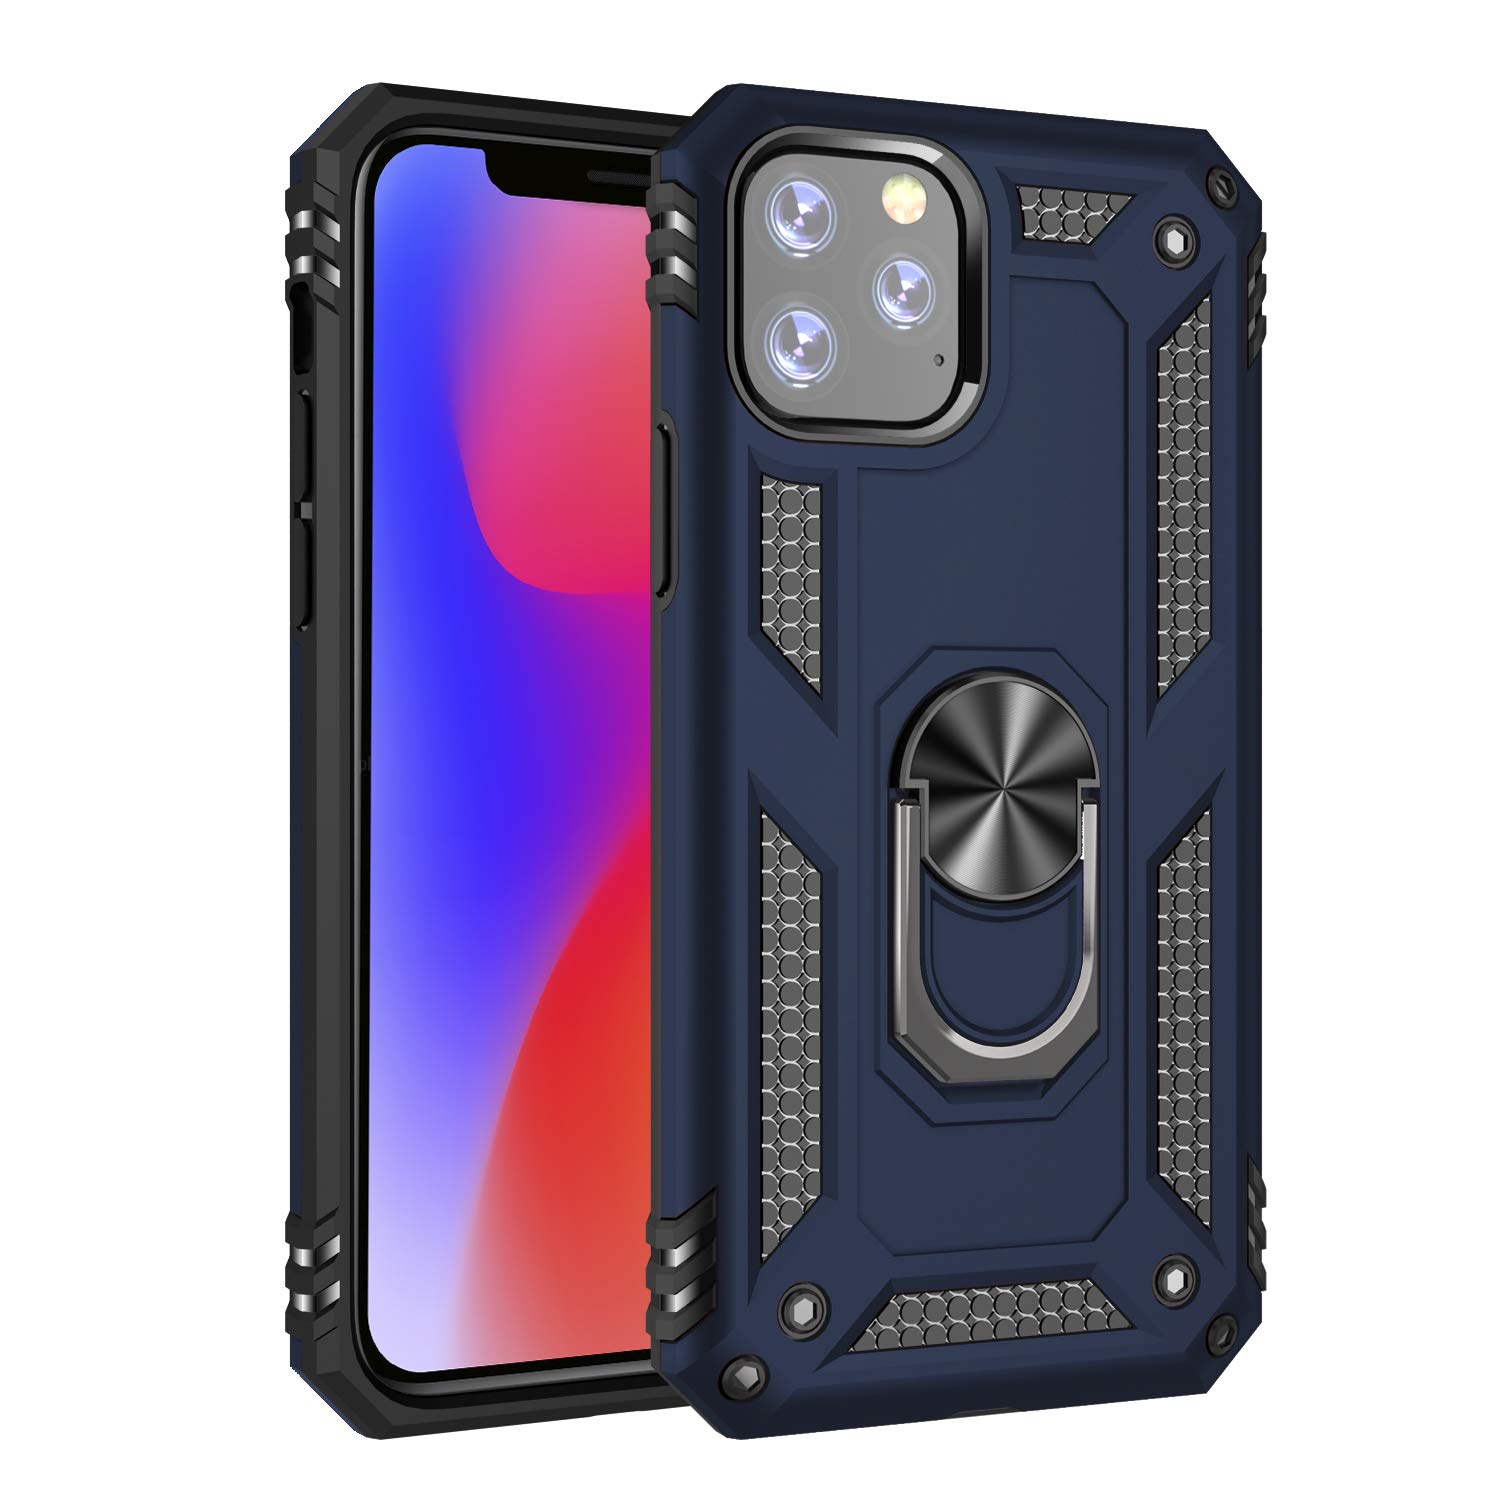 iPhone 11 Pro (iPhone 2019 5.8 Inch) Case, Futanwei Military Grade Rugged Armor Shockproof Phone Case with Metal Finger Ring Kickstand [Fit Magnetic Car Mount] for Apple iPhone 11 Pro, Blue by Futanwei